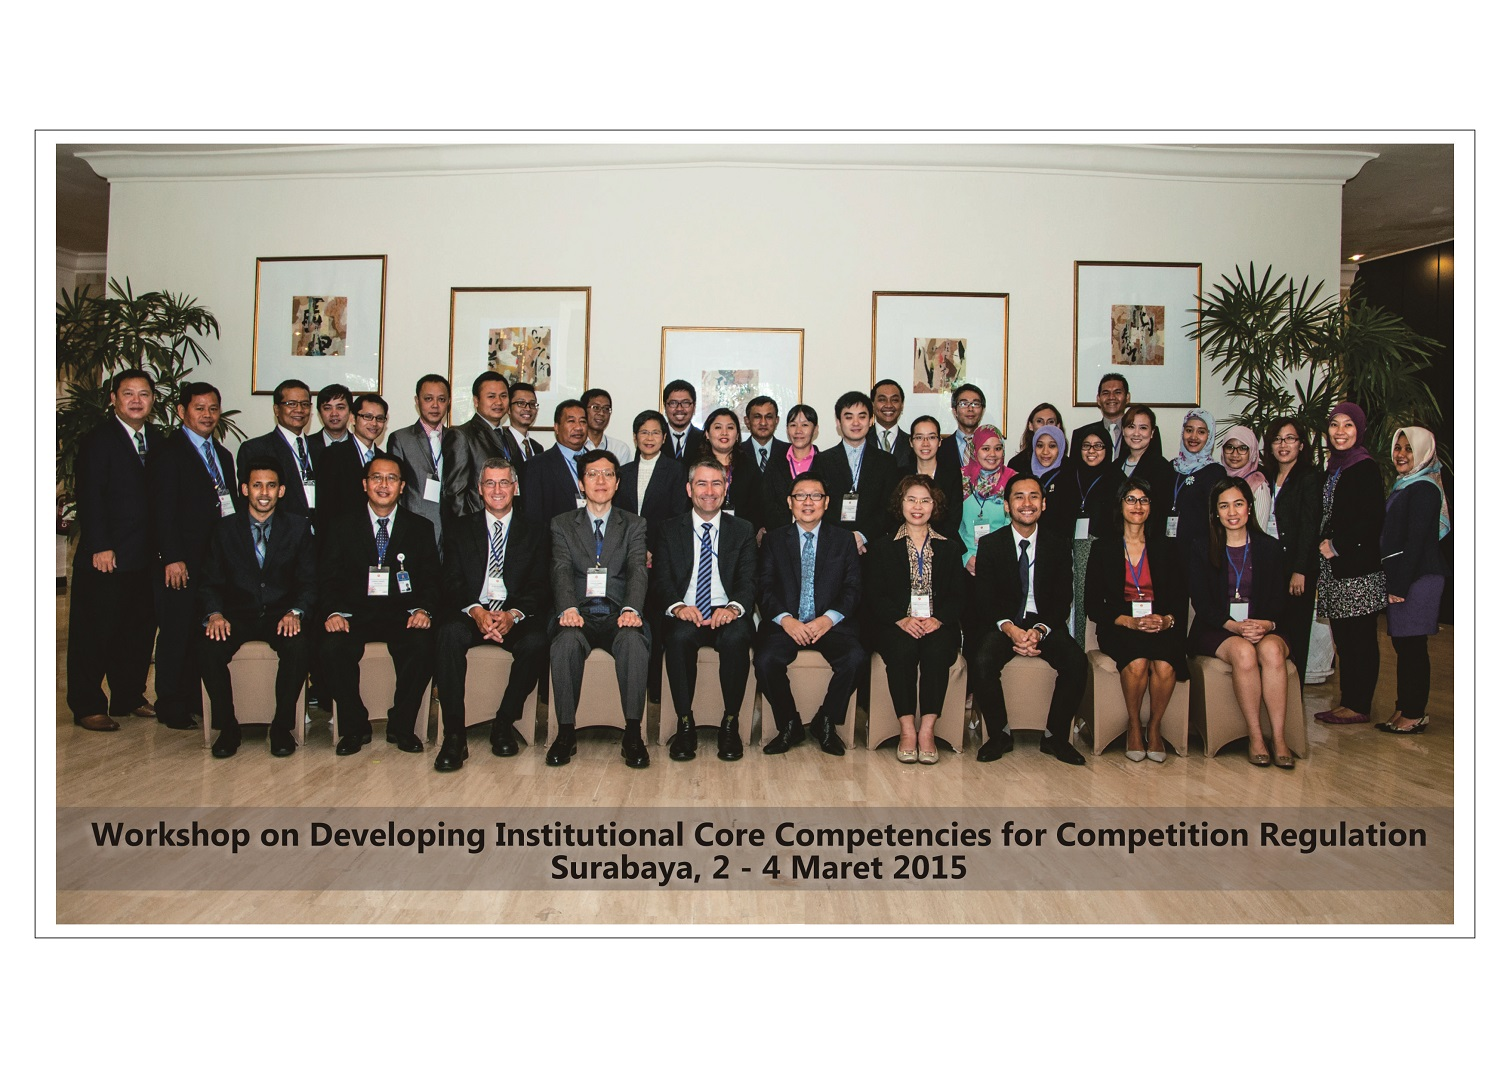 Workshop on Developing Institutional Core Competencies for Competition Regulation, Surabaya, 2-4 Maret 2015